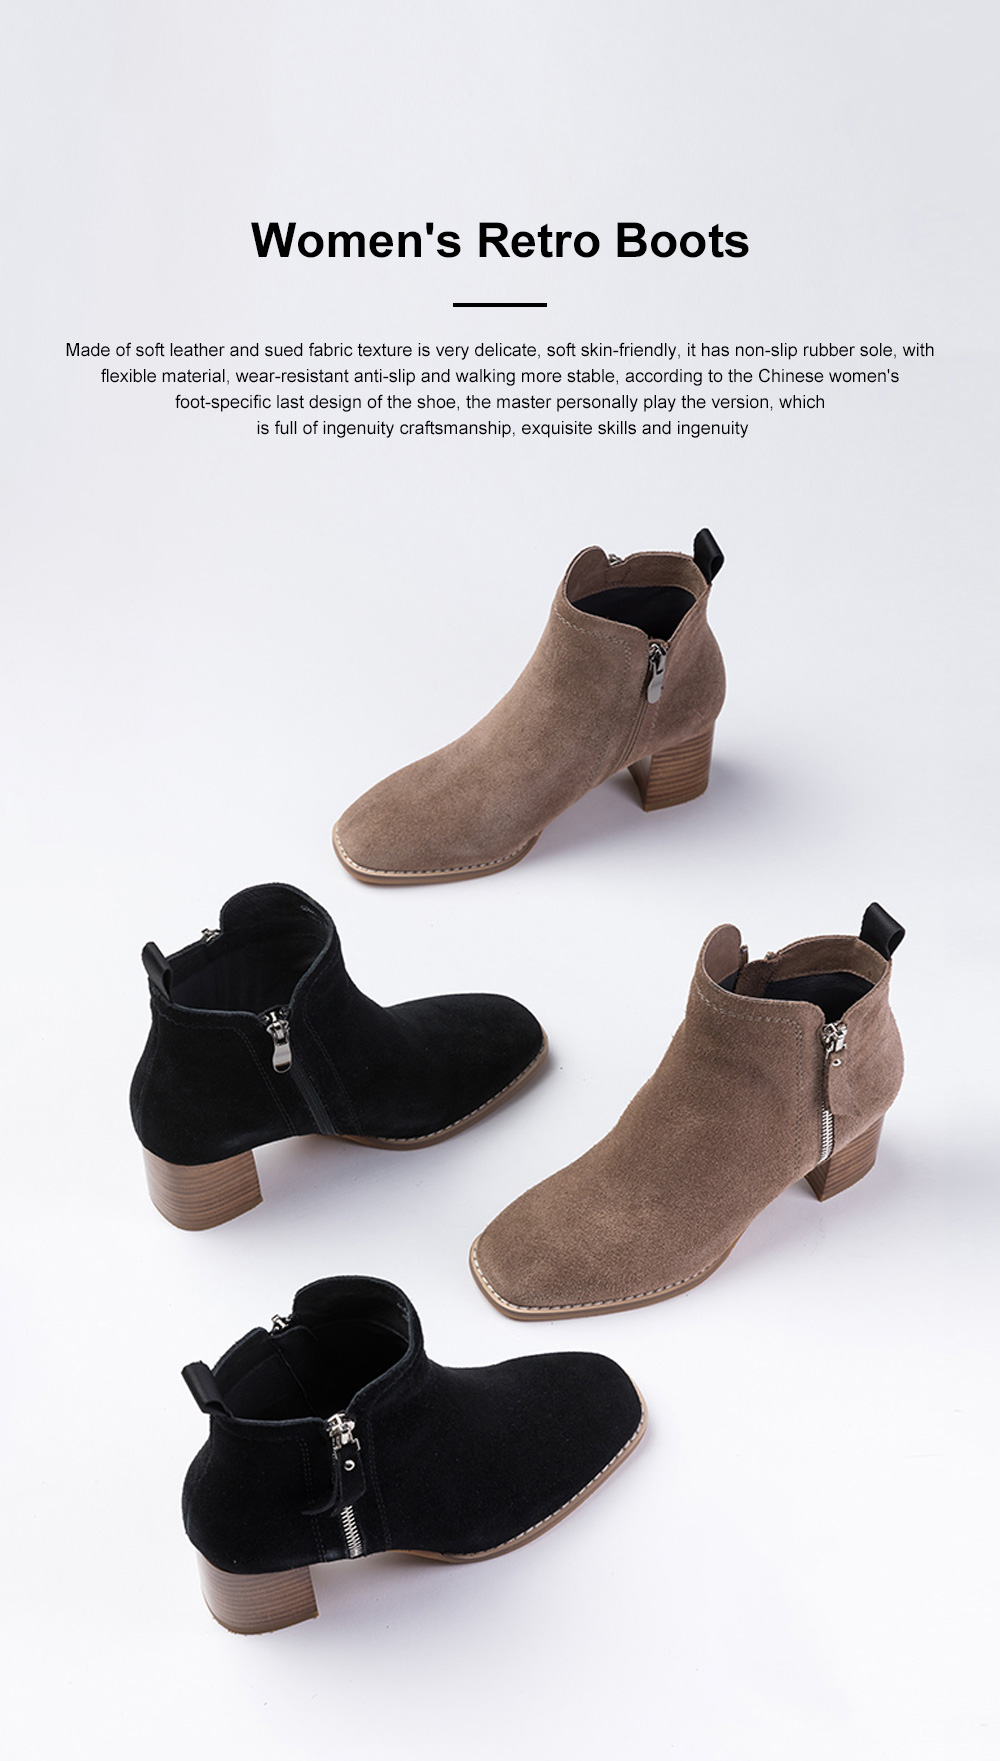 New Simple Fashion Retro Booties Zipper Square Head Thick Women's Boots 0